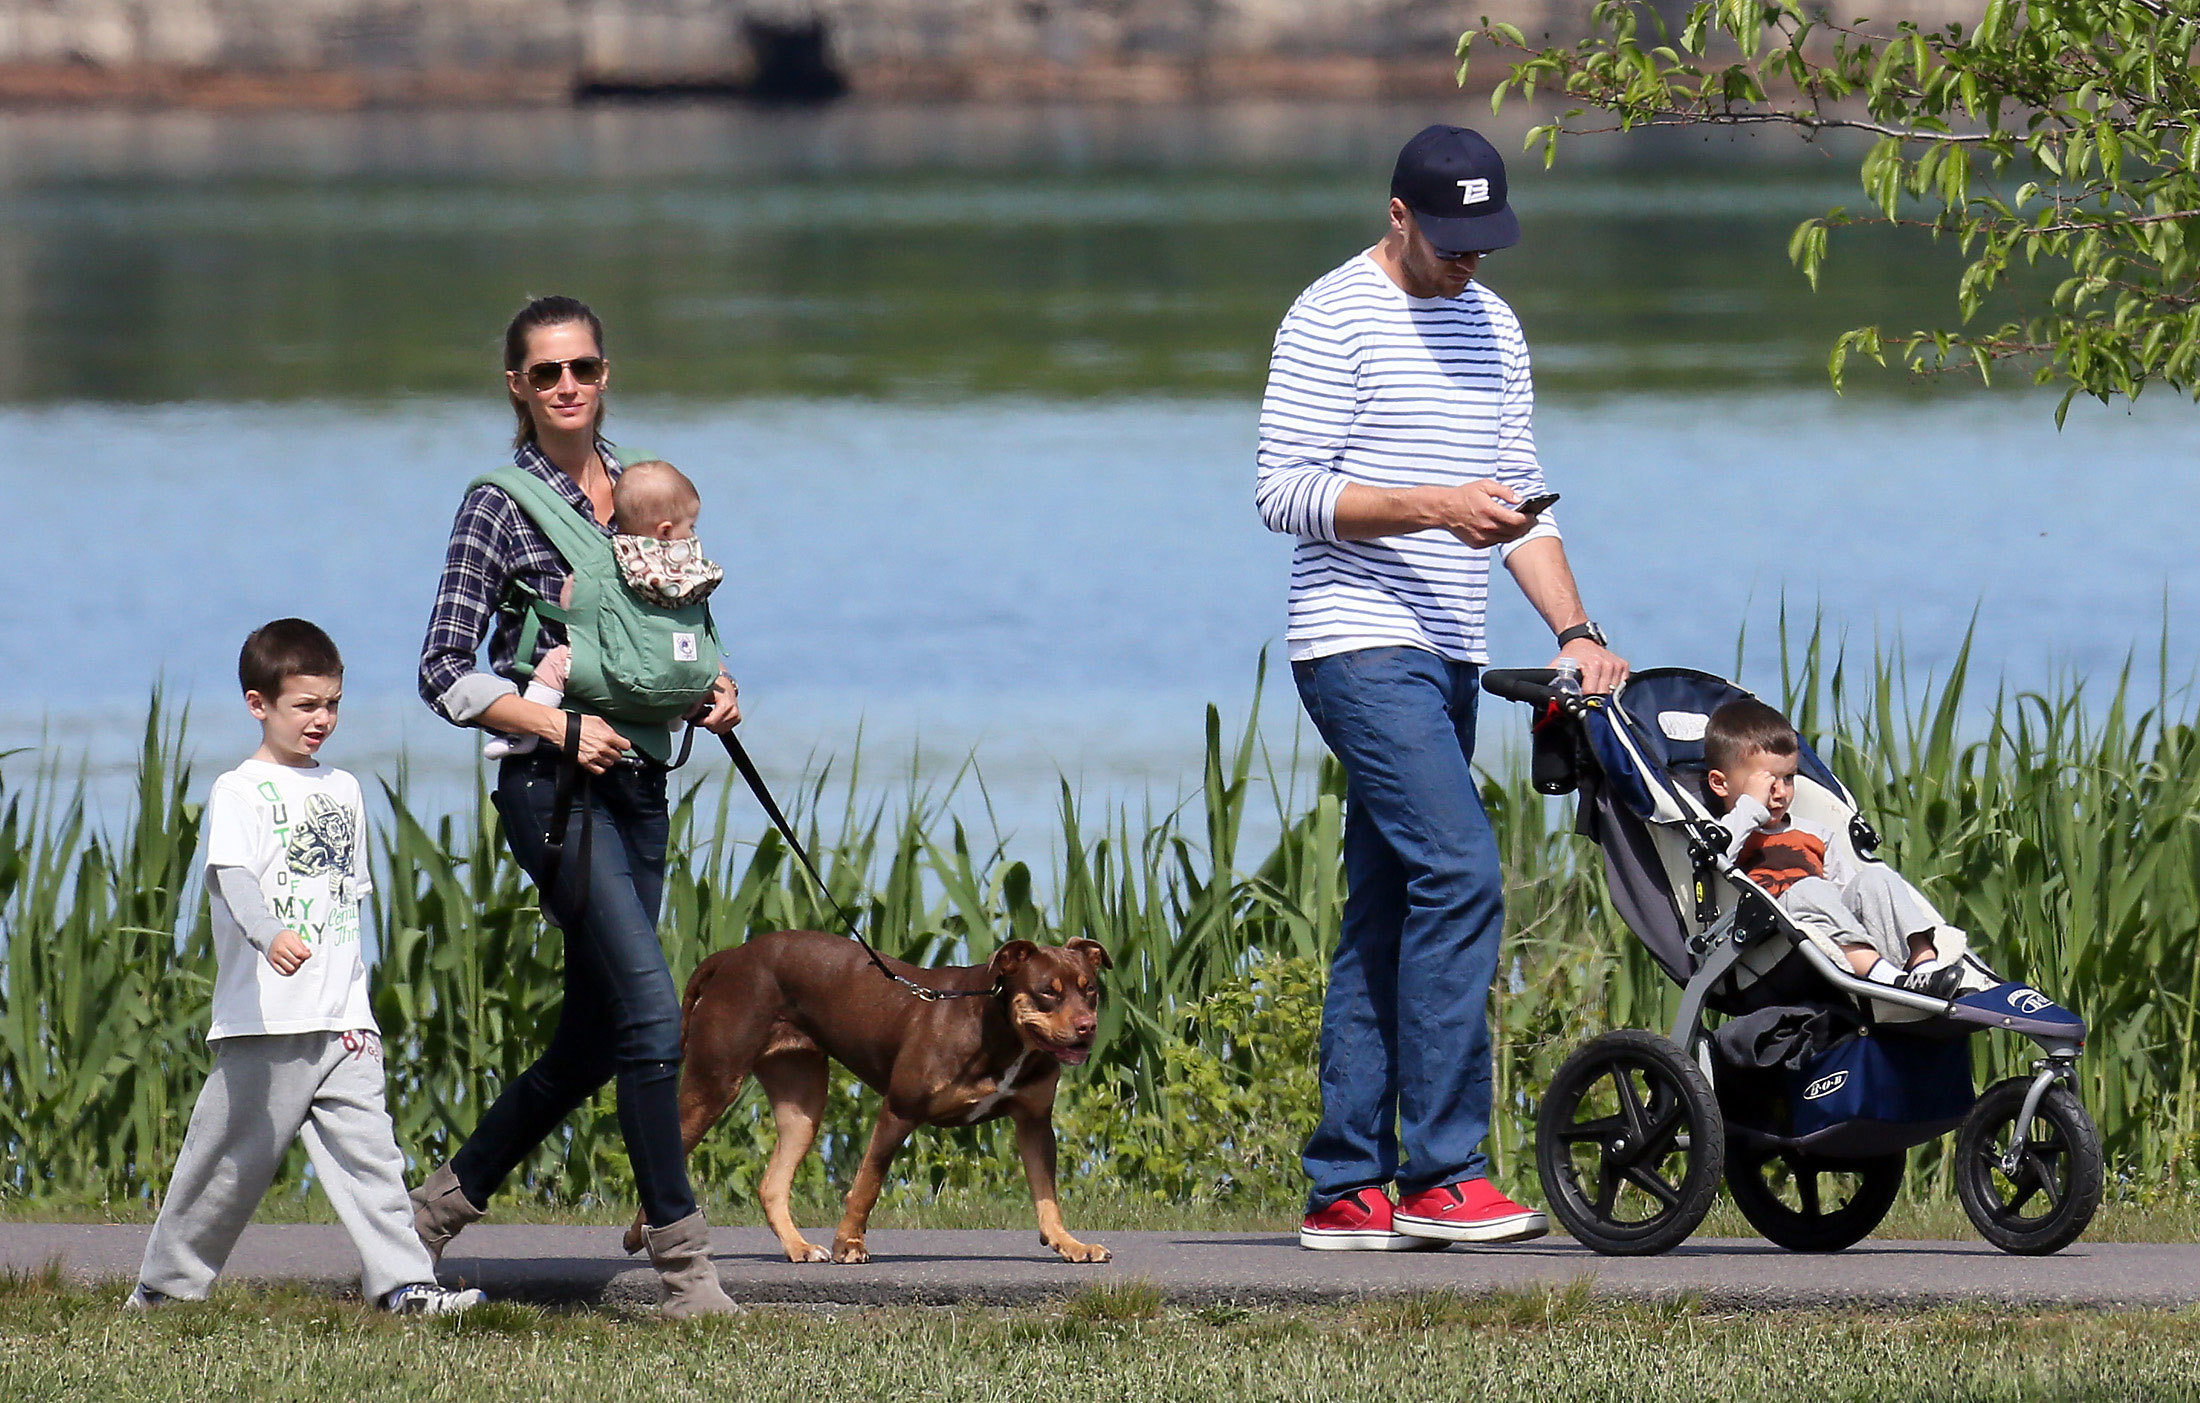 Gisele Bundchen and Tom Brady out and about